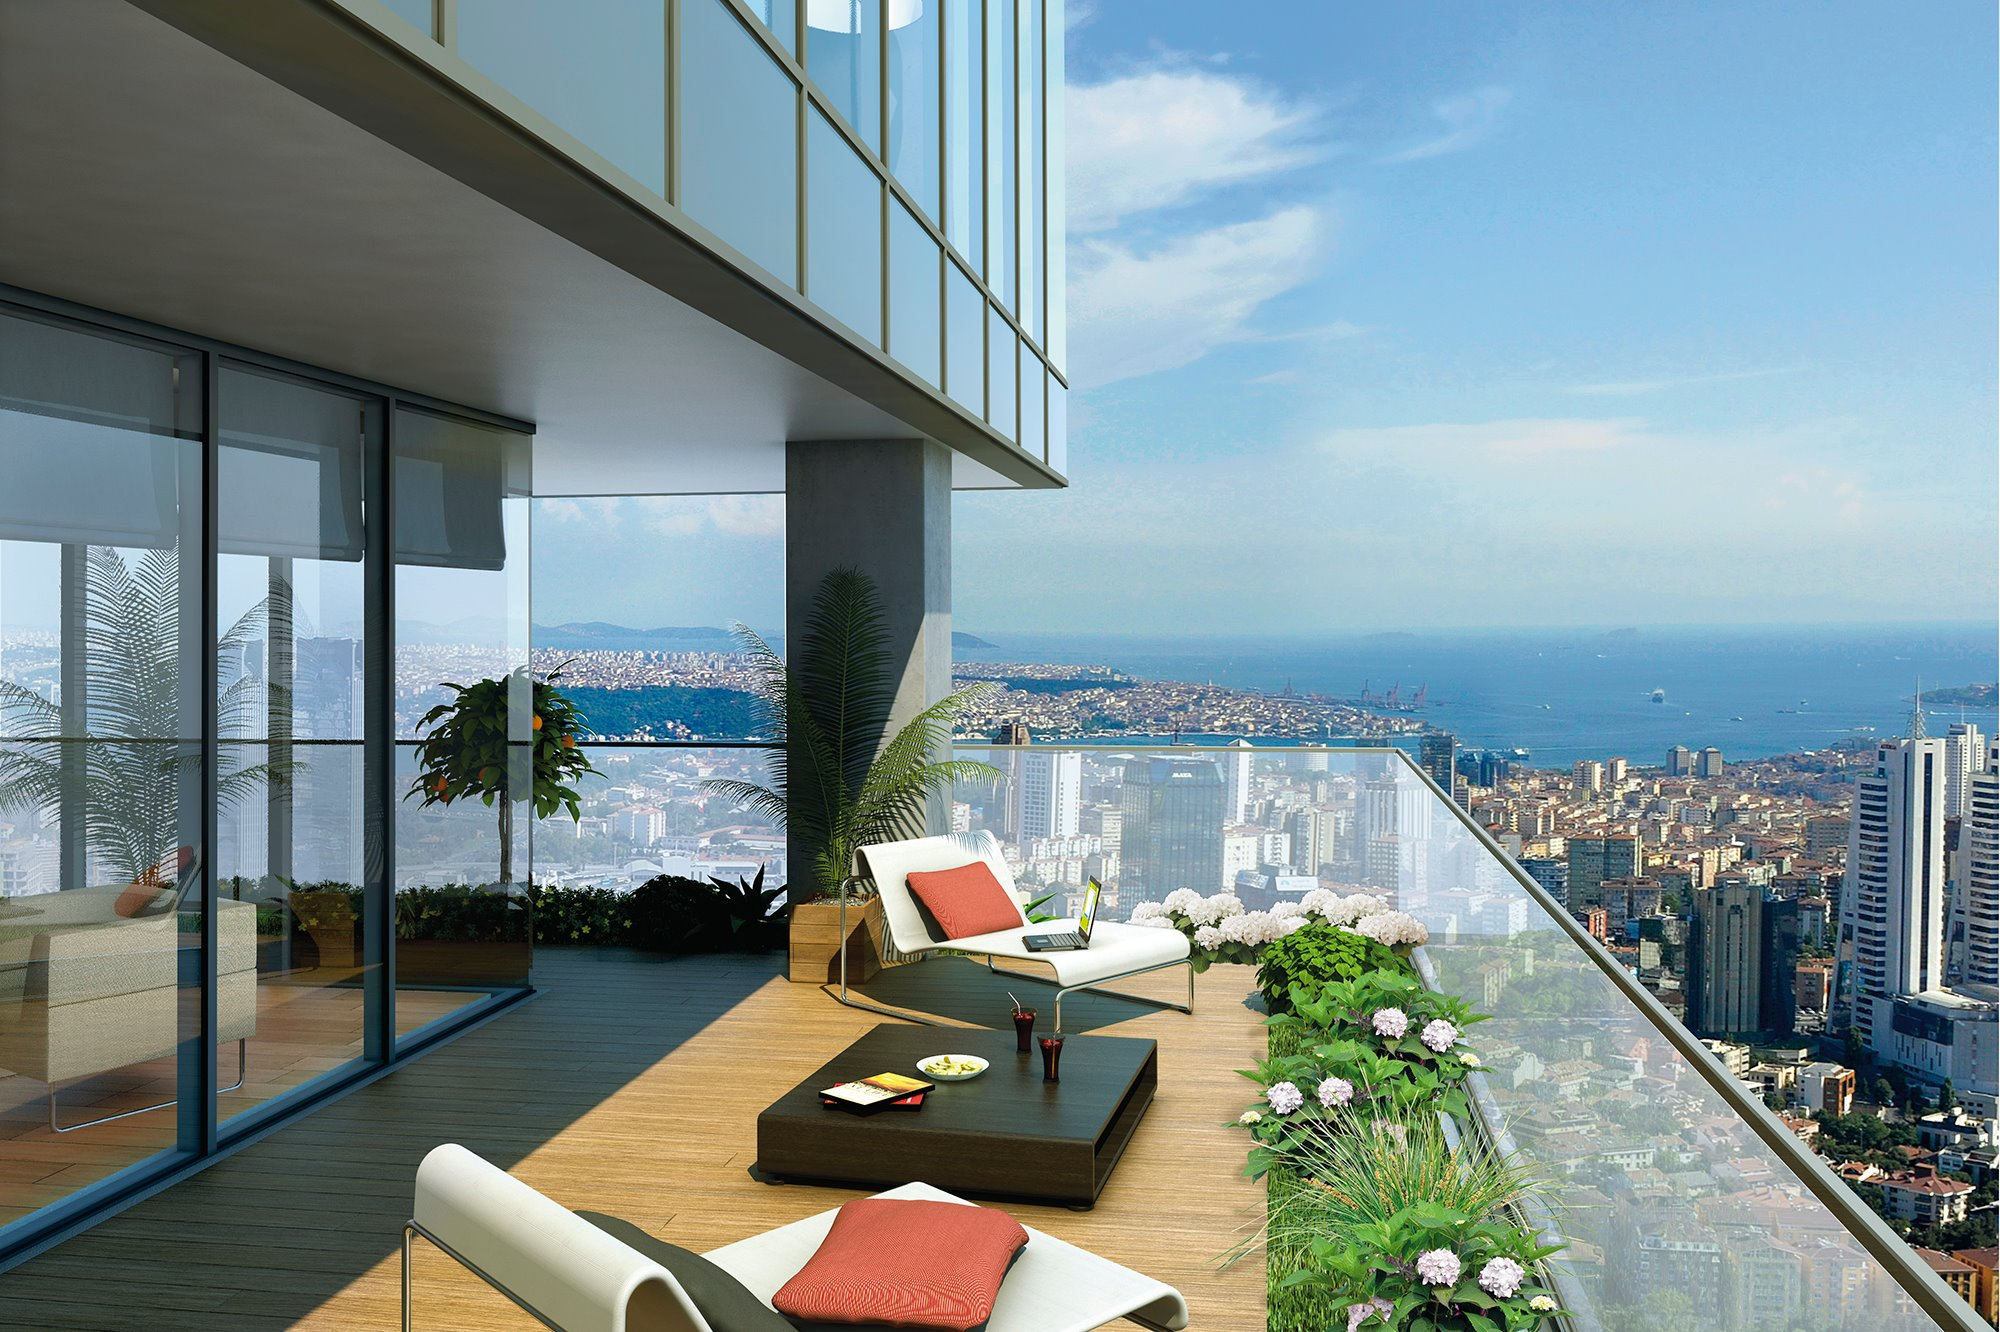 Lovely Miami Or Istanbul Property, Which Is Best?